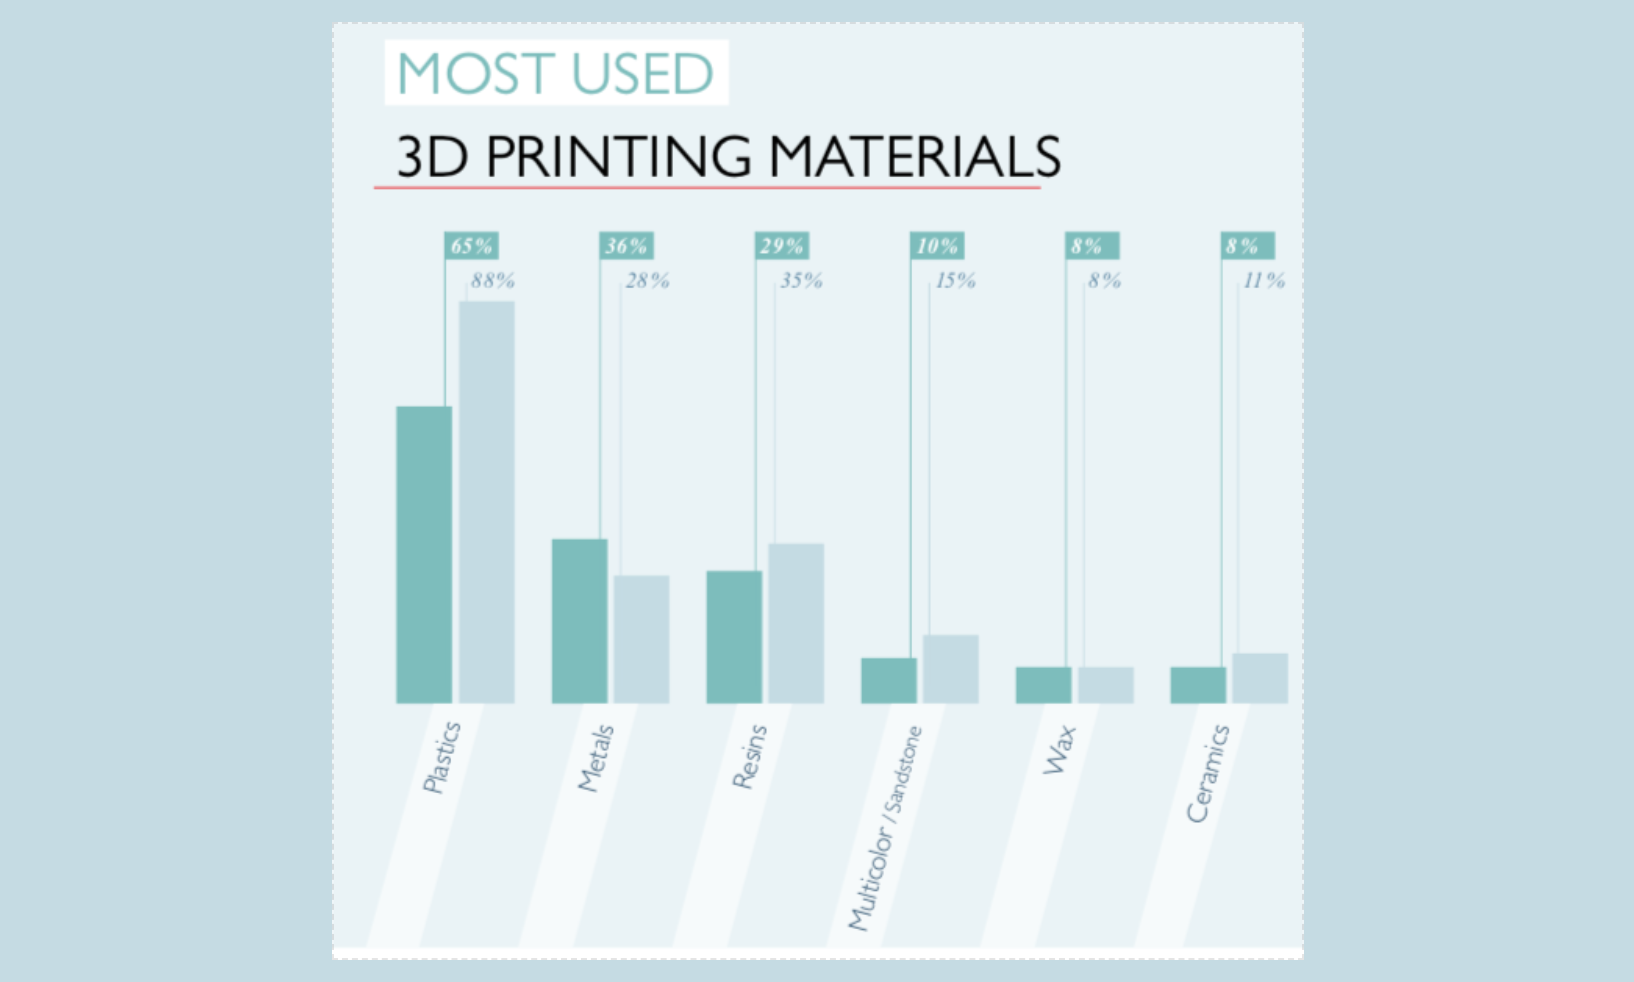 Metal 3D printing is particularly ideal for applications that mix high design complexity with low volume production and projects that ensure production flexibility.